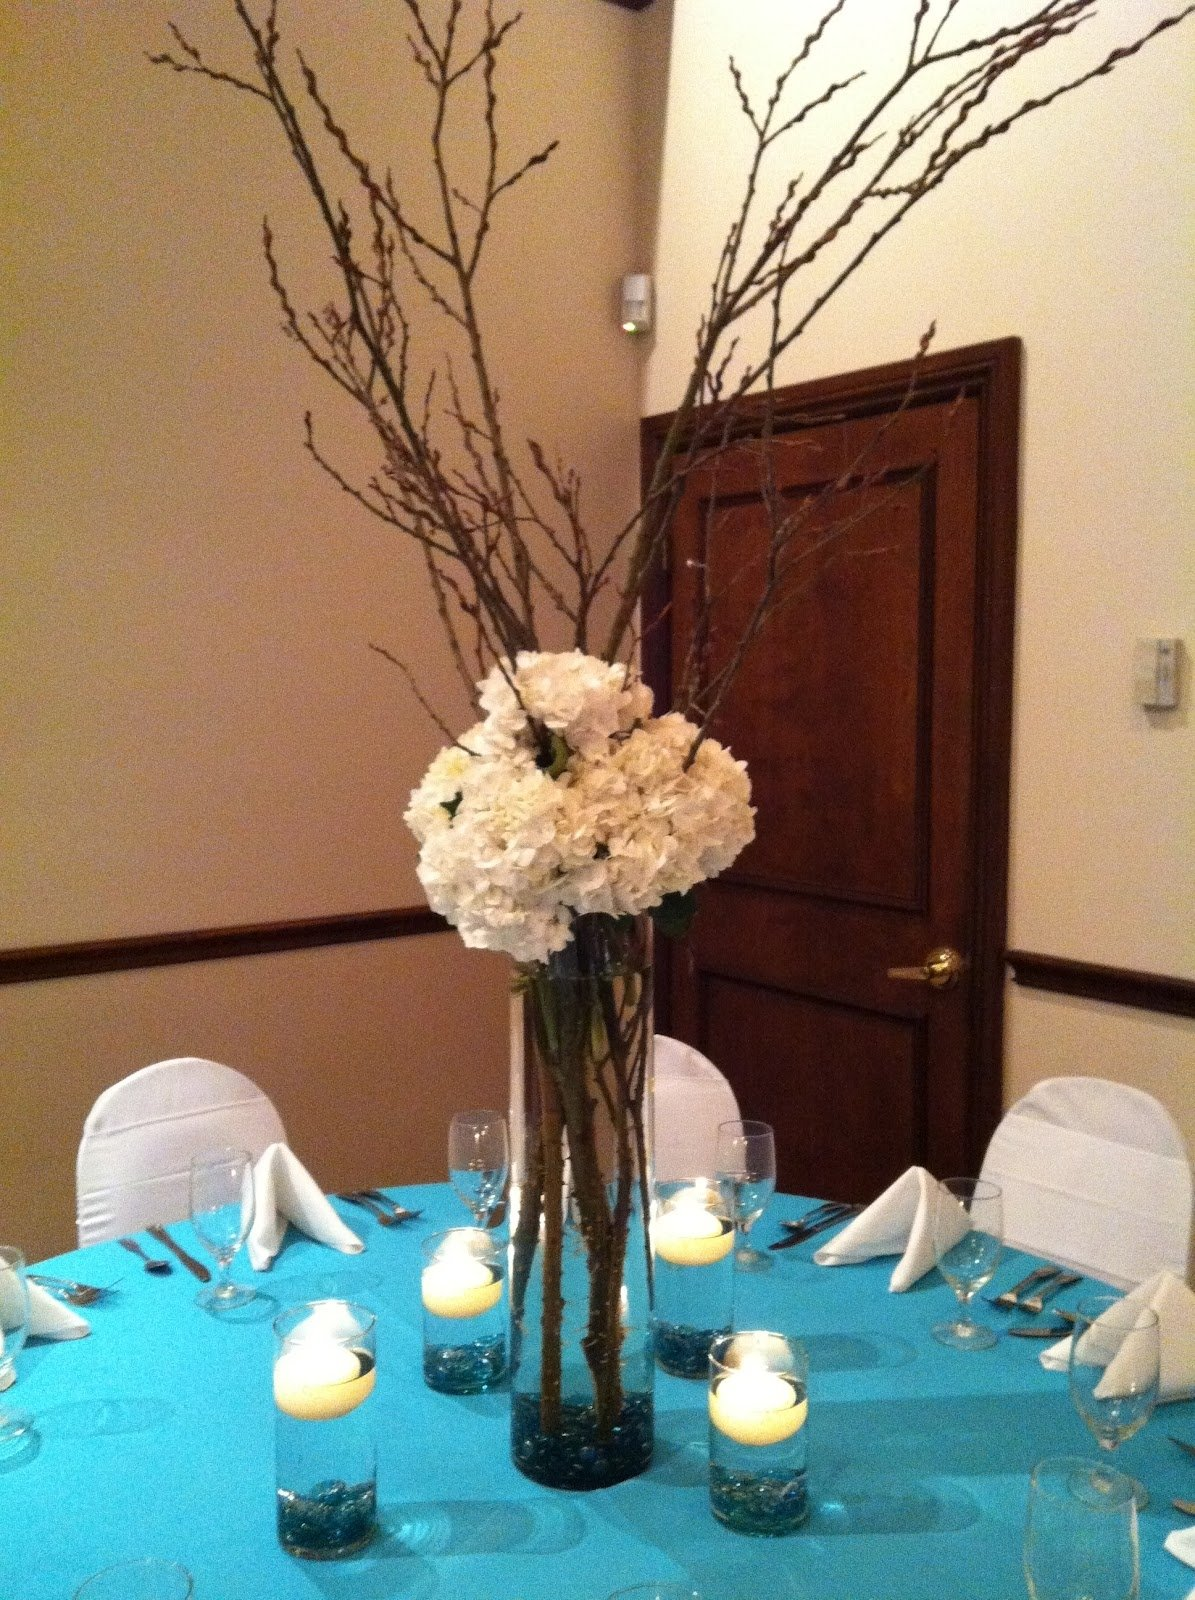 10 Lovable Ideas For Wedding Centerpieces On A Budget awesome cheap and easy wedding decorations 1000 ideas about 2 2021